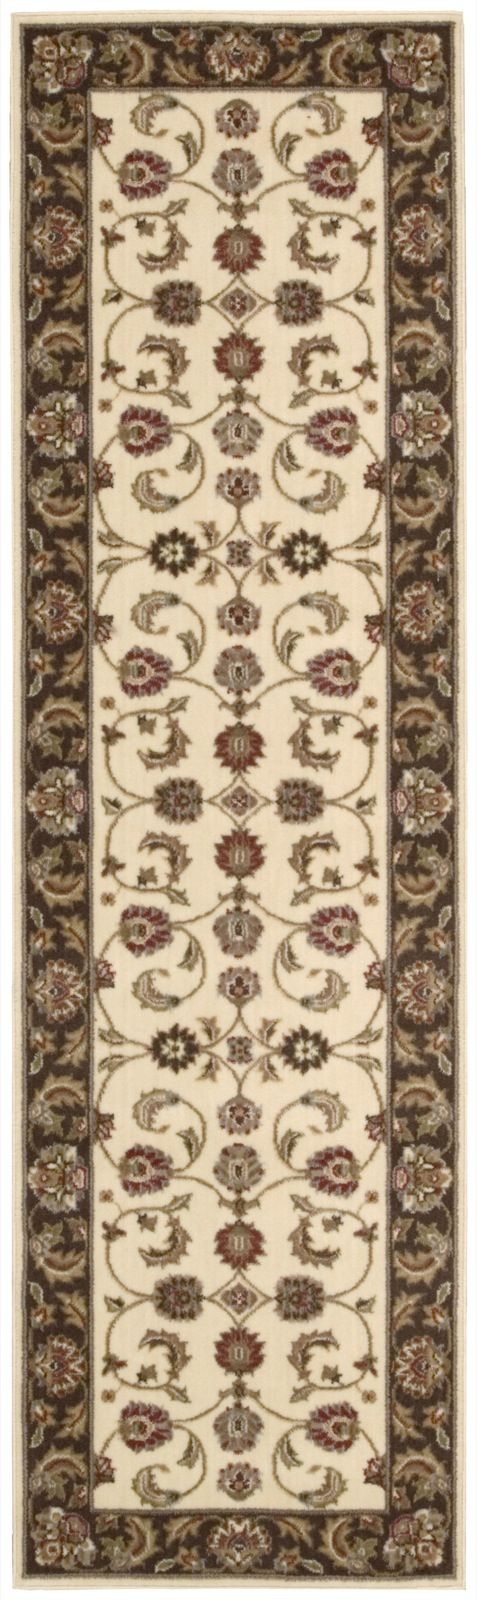 nourison somerset traditional area rug collection